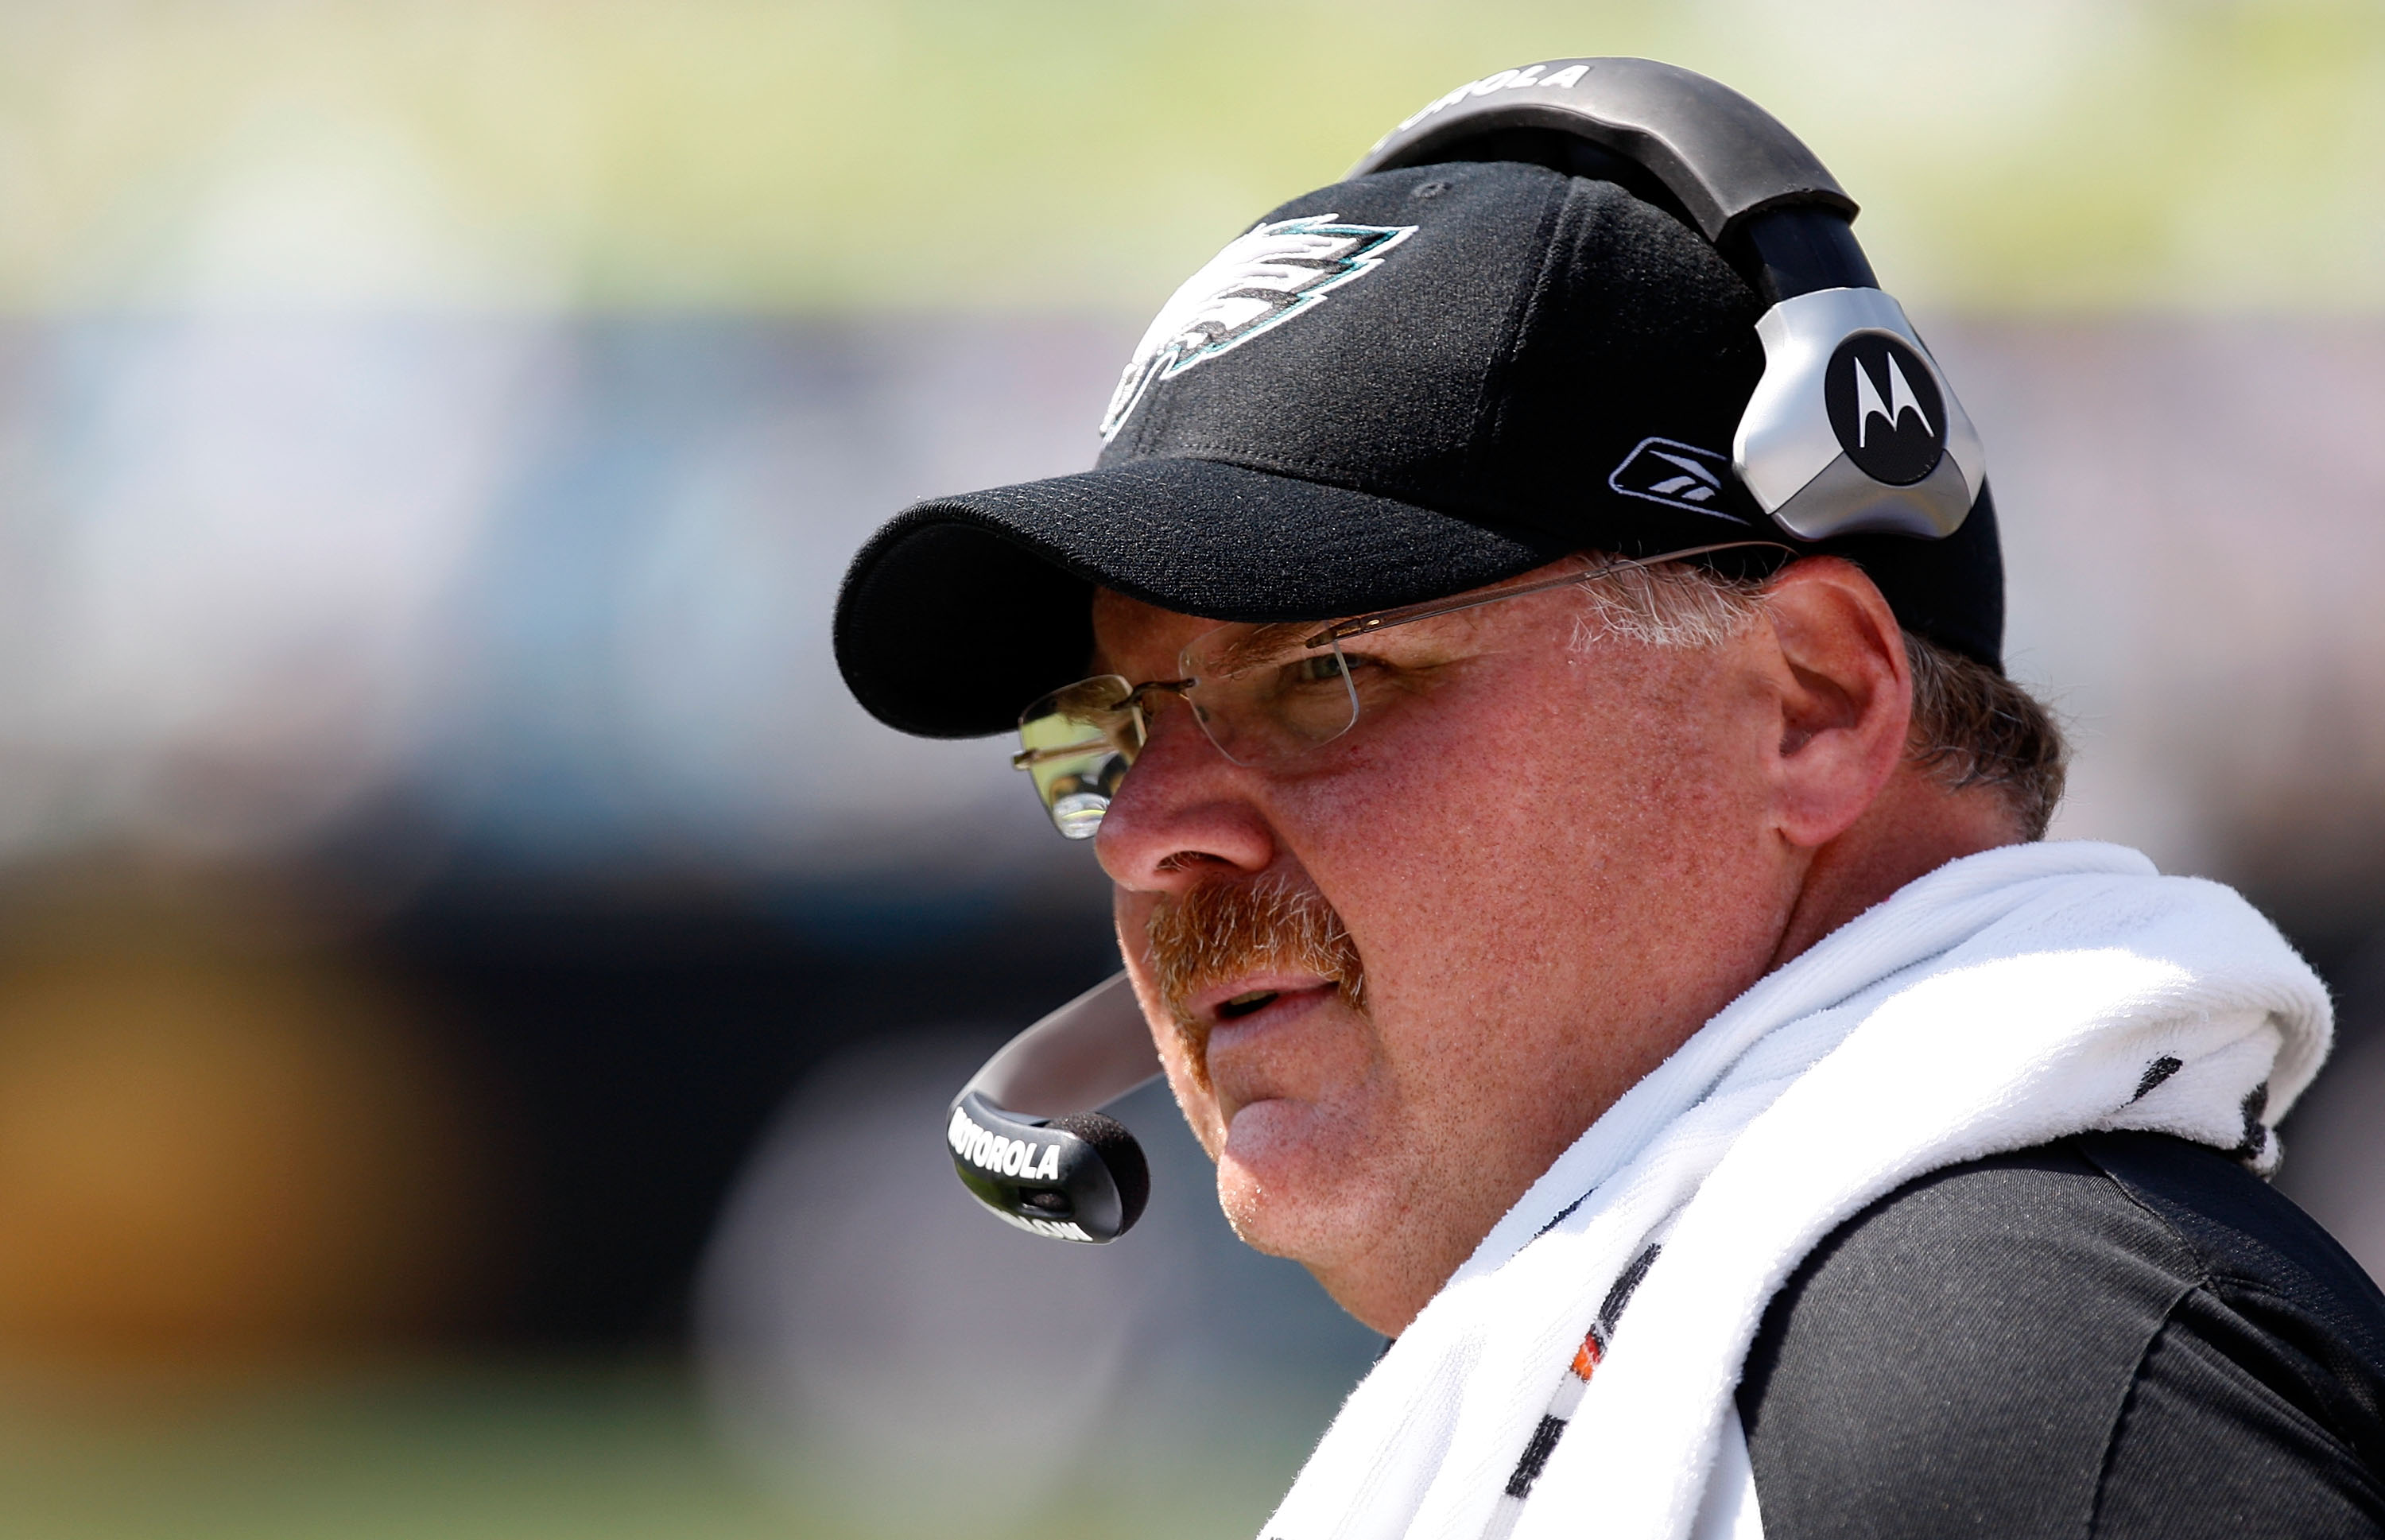 CHARLOTTE, NC - SEPTEMBER 13:  Head Coach of the Philadelphia Eagles, Andy Reid, stands on the field during their NFL season opener against the Carolina Panthers at Bank of America Stadium on September 13, 2009 in Charlotte, North Carolina.  (Photo by Str